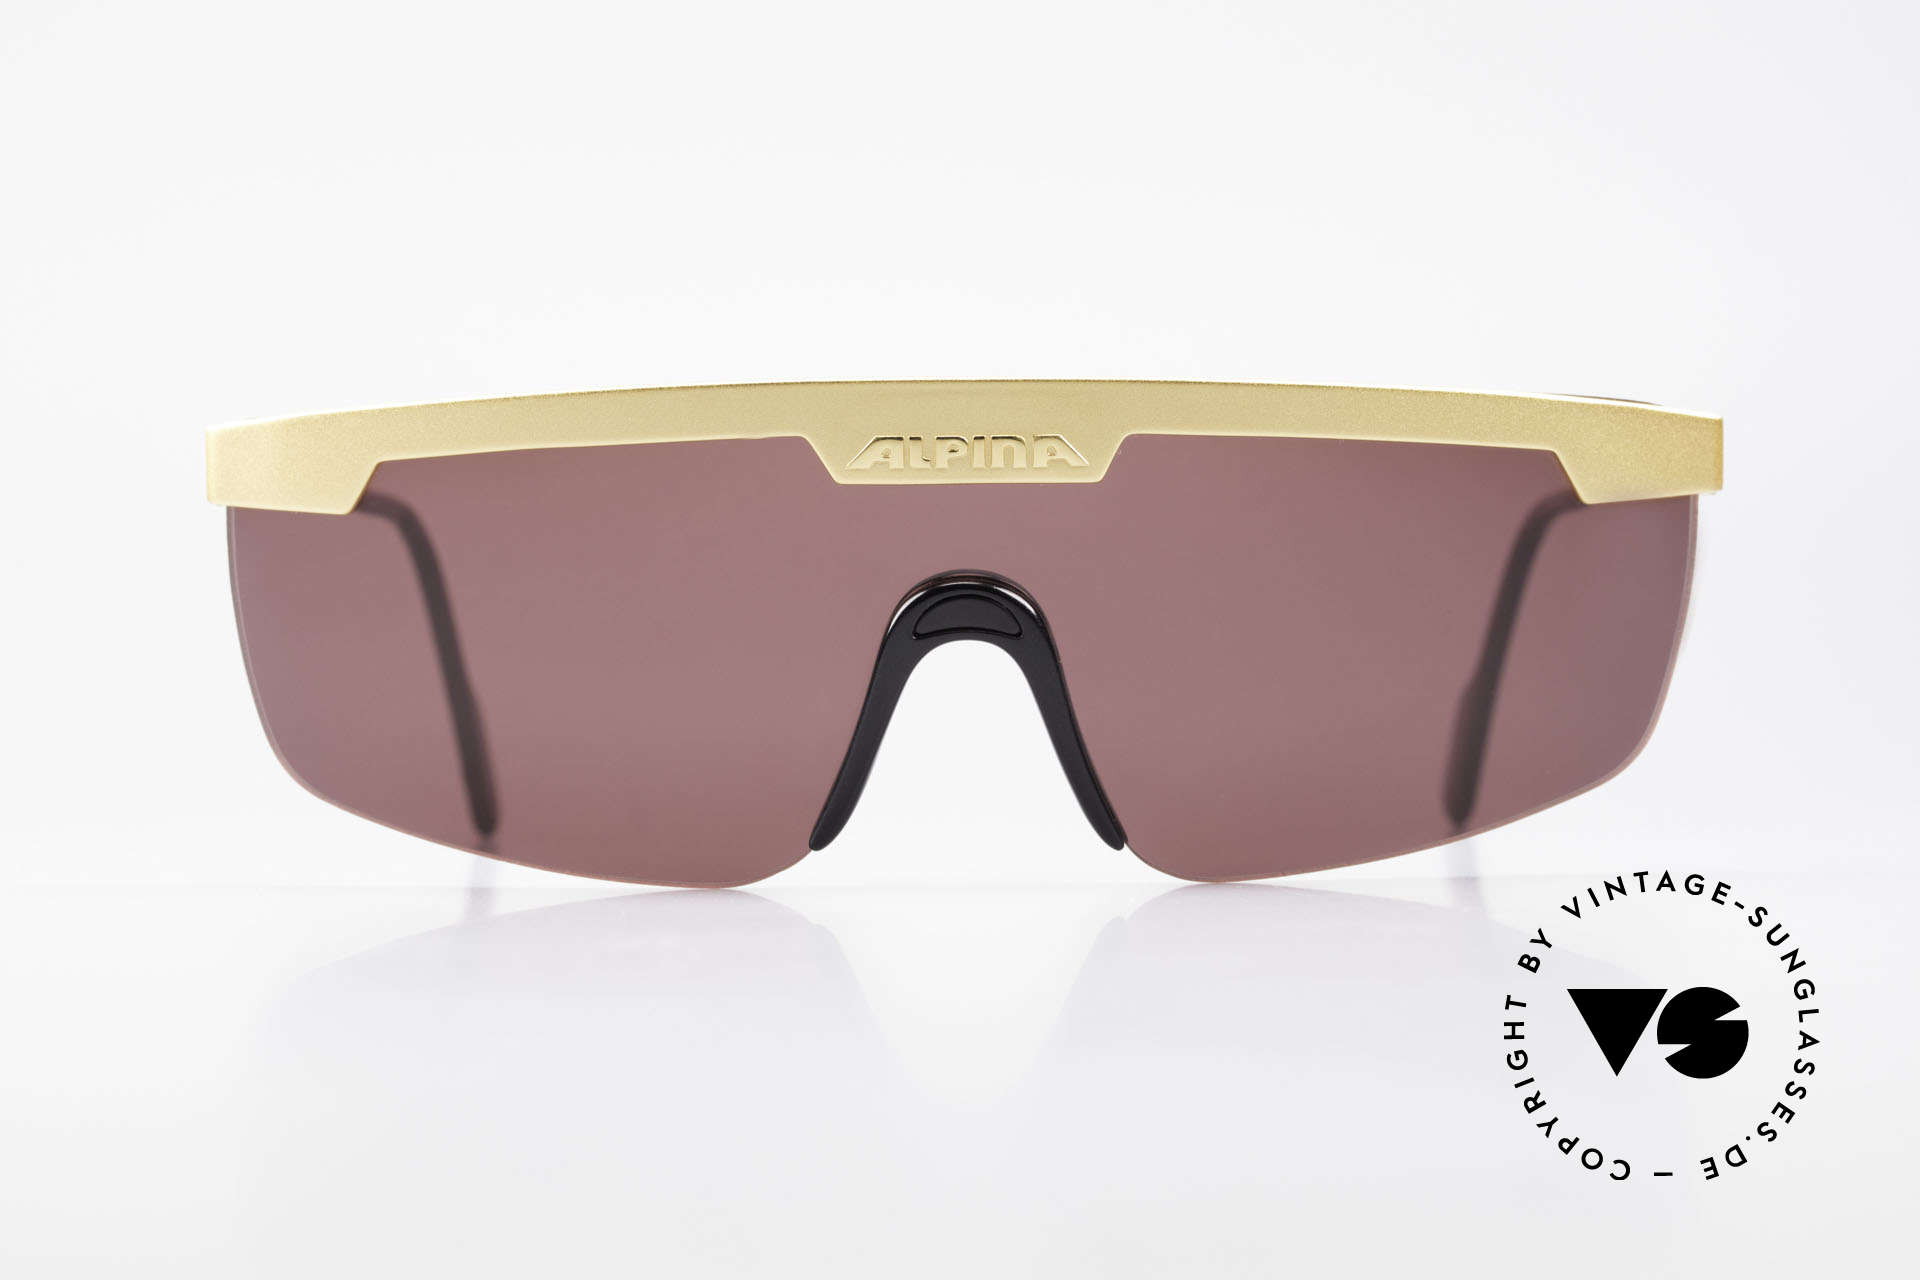 Alpina M57 Vintage Shades Panorama View, one single shade for a perfect panorama view, Made for Men and Women